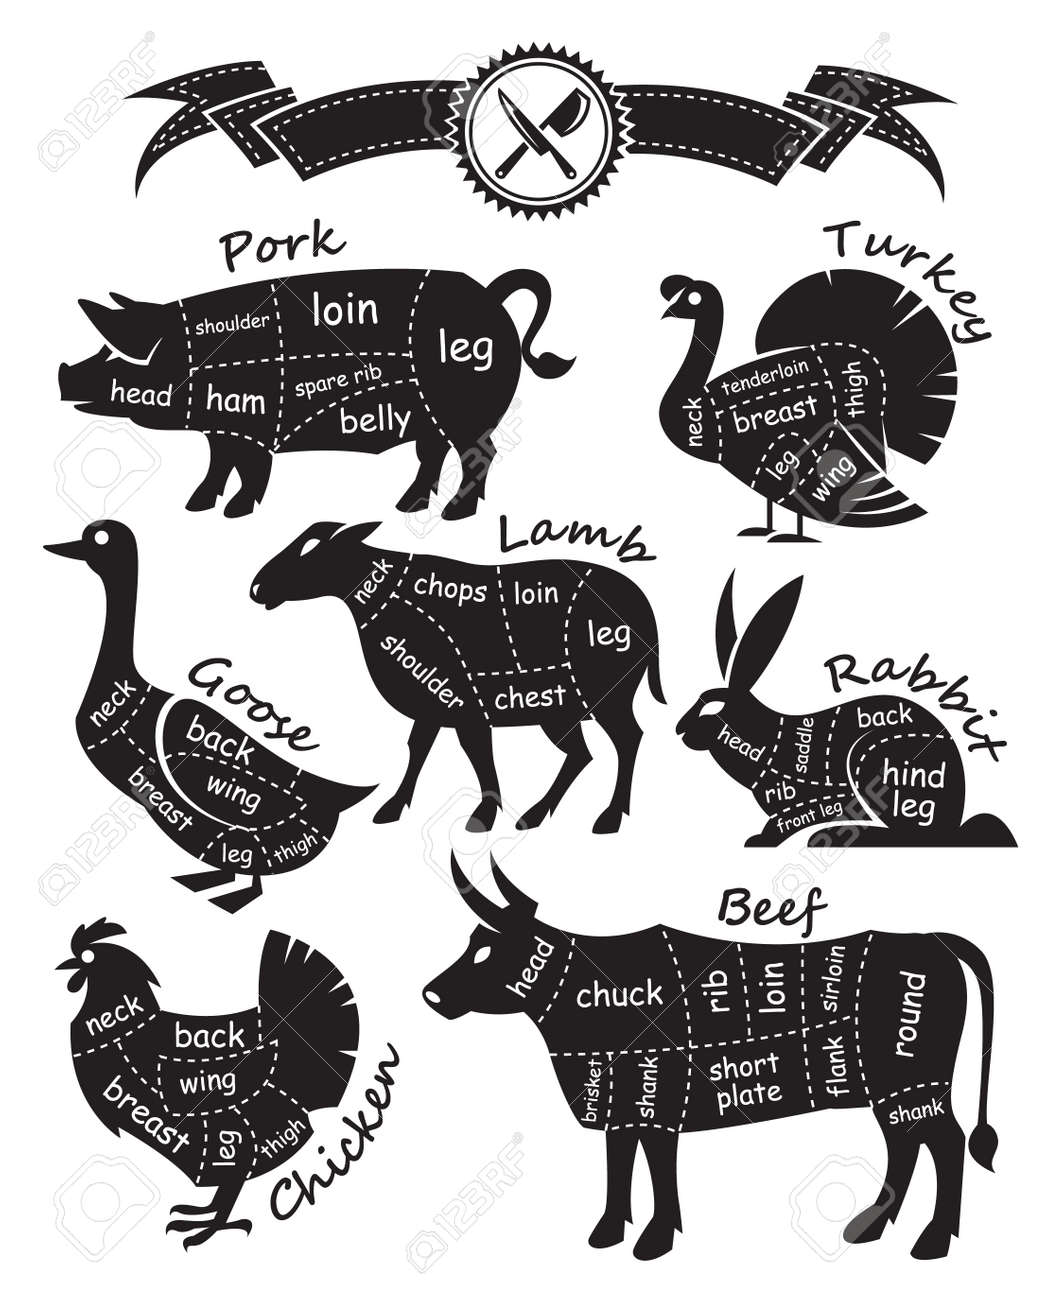 43800 Pork Stock Vector Illustration And Royalty Free Clipart Pig Cut Diagram Monochrome Guide For Cutting Meat